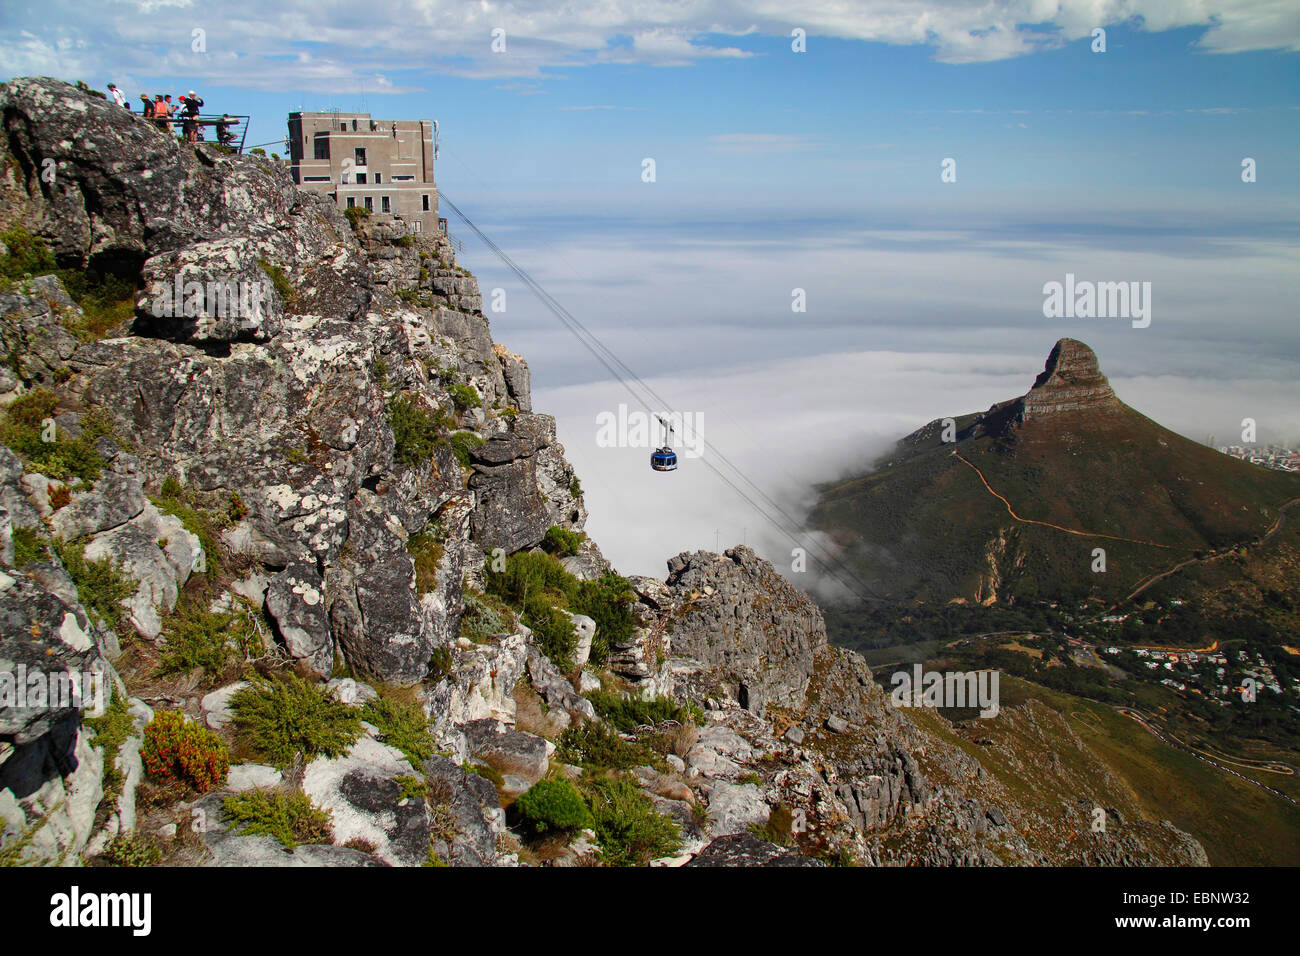 the table mountain cableway with Lion's Head, South Africa, Table Mountain National Park, Capetown - Stock Image